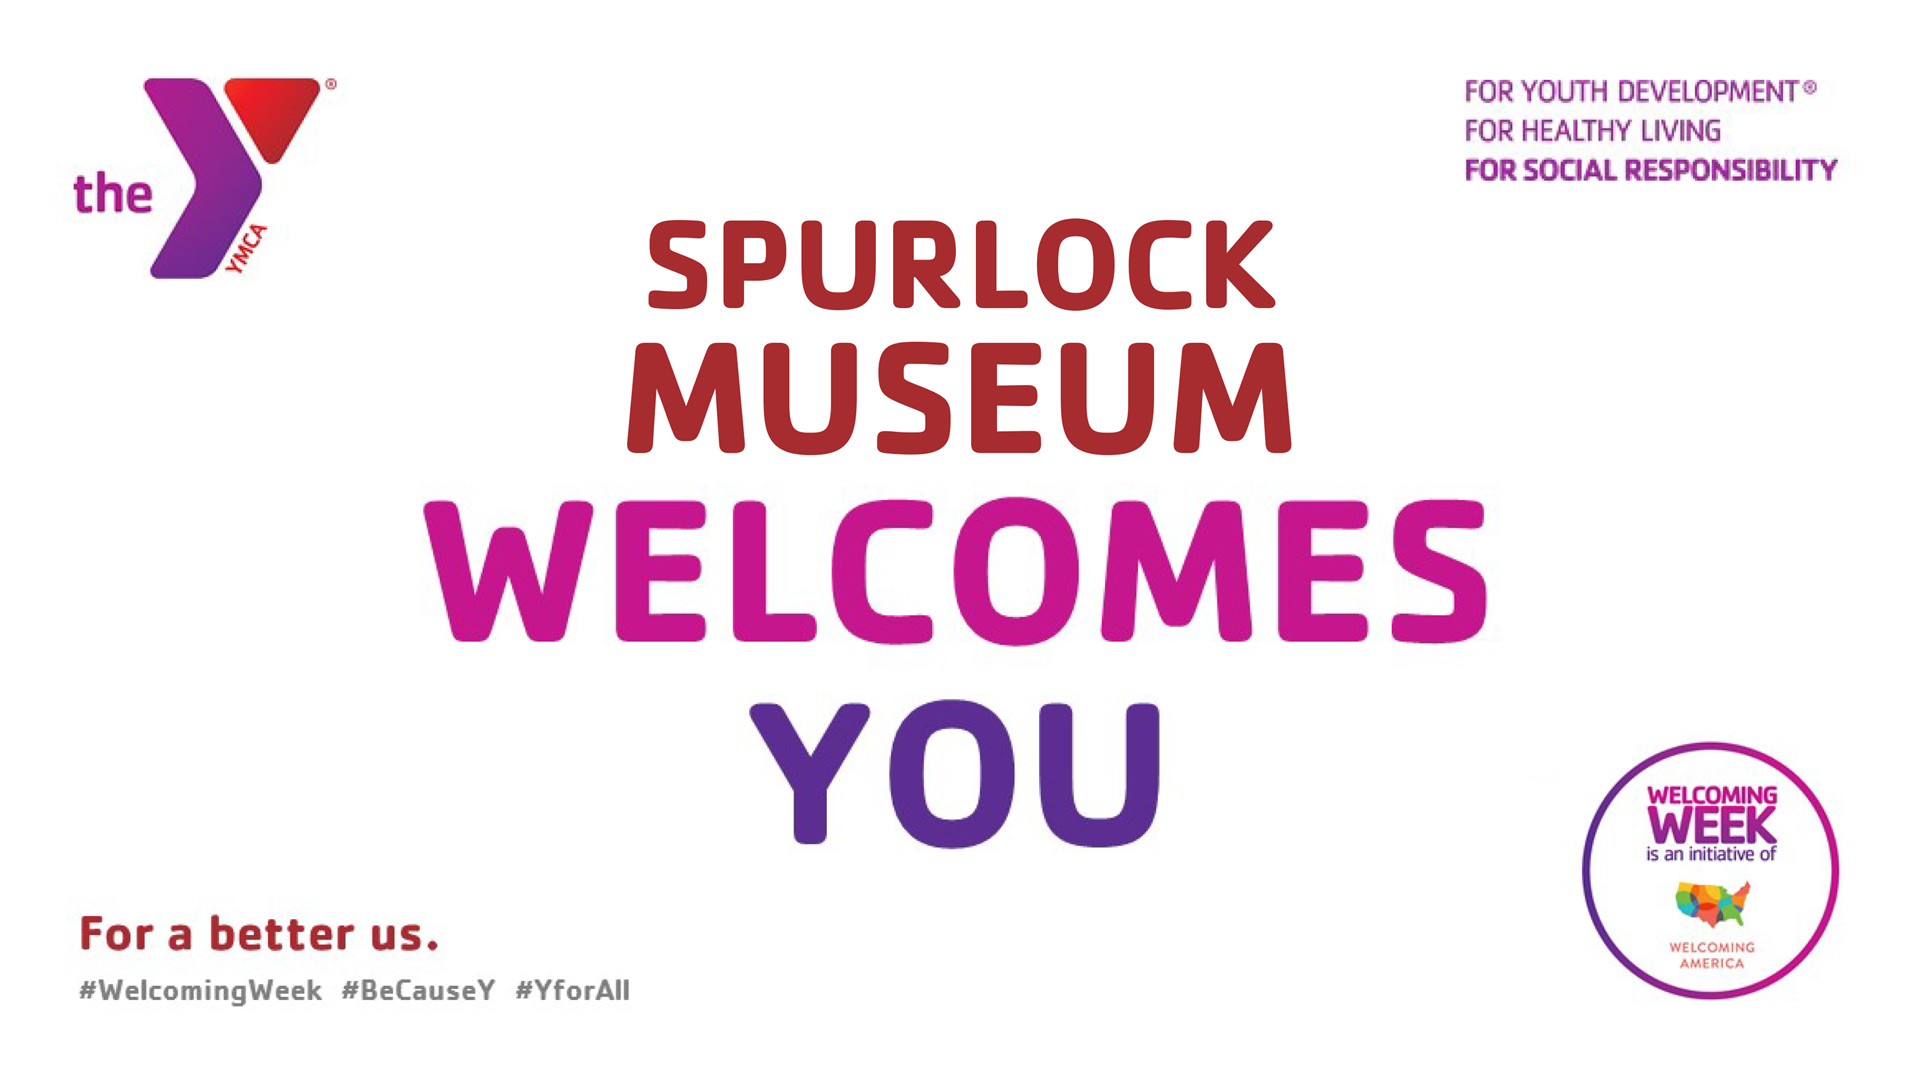 Spurlock Museum Welcomes You with the Y and Welcoming Week logos